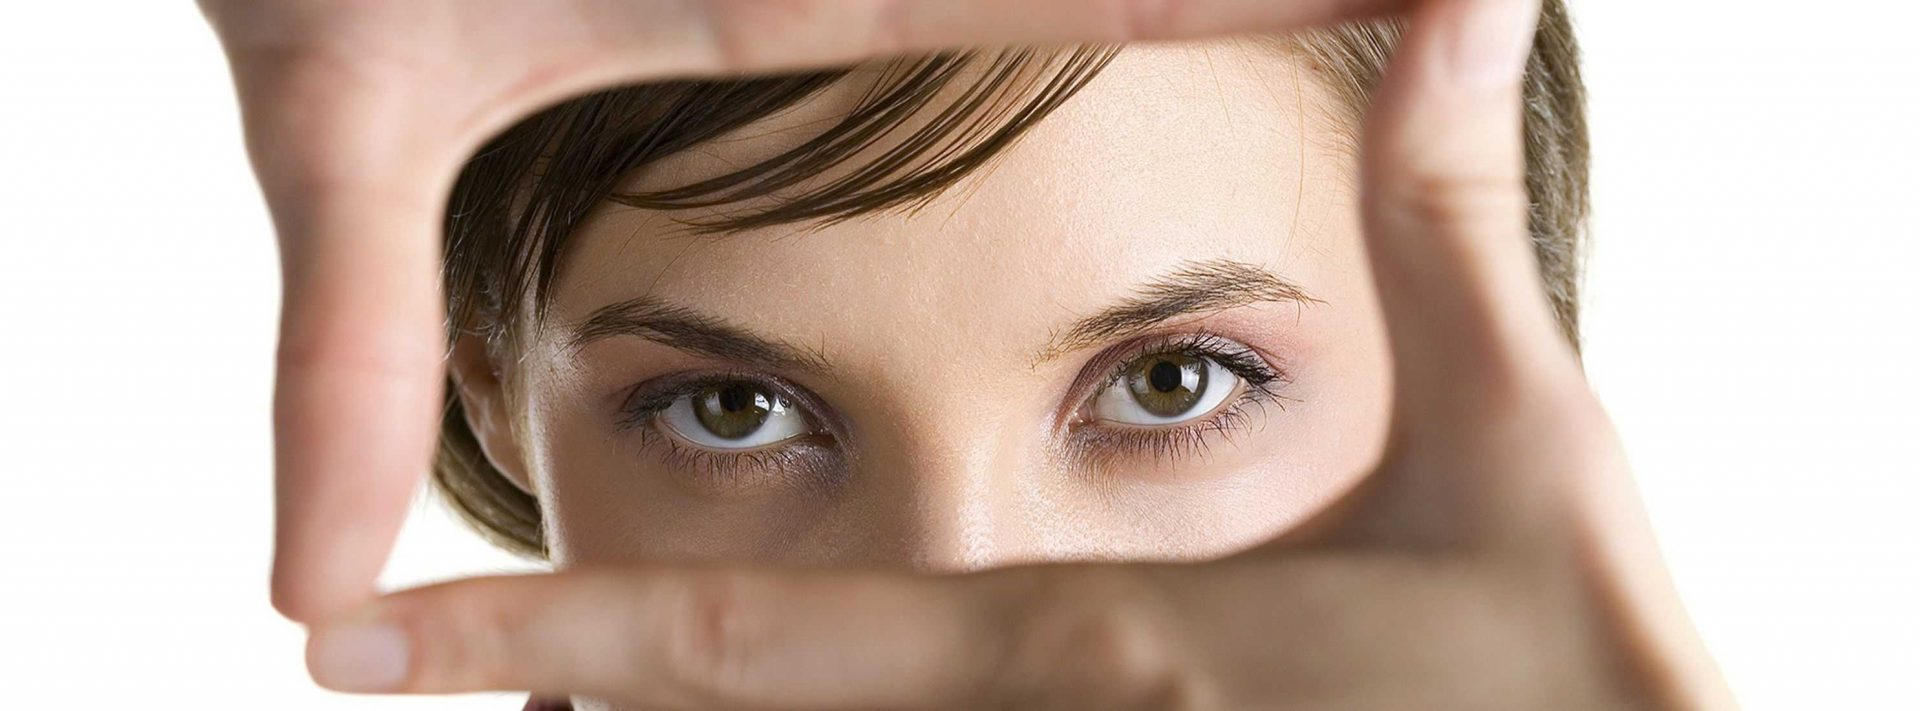 Contact Lenses: for shortsighted and longsighted